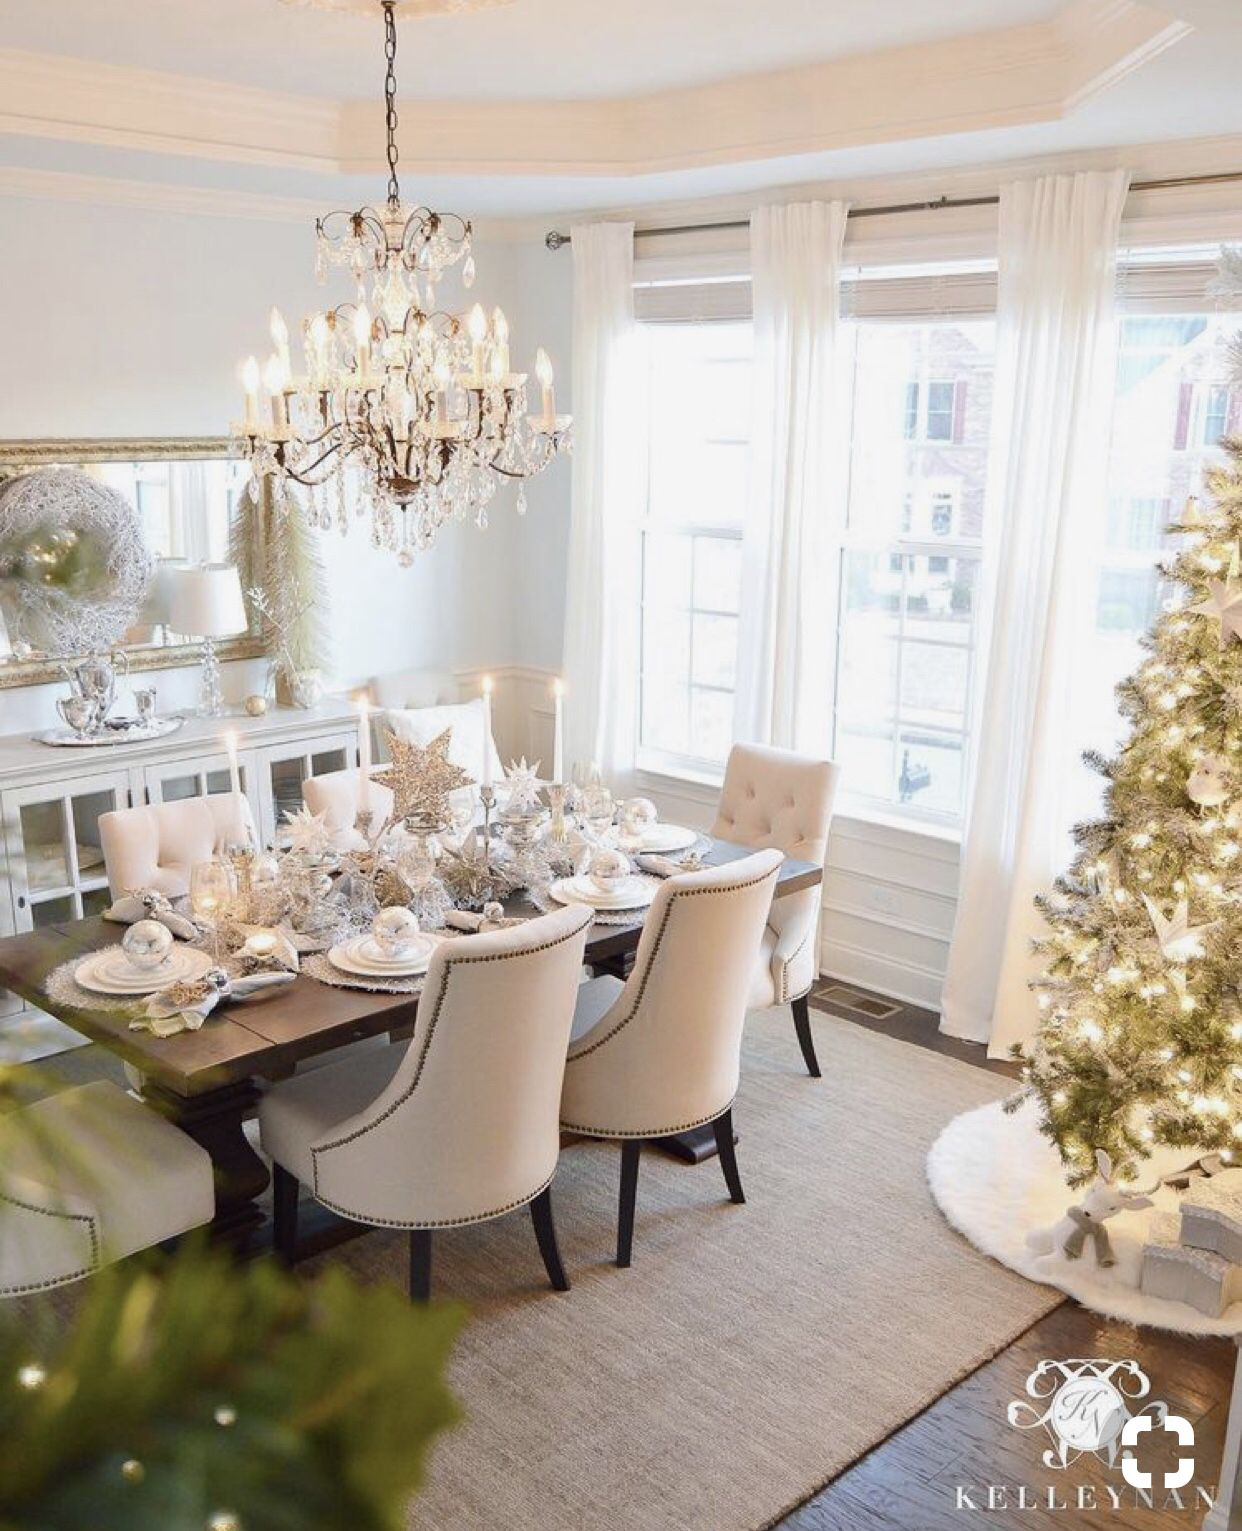 Kelley nan Christmas dining room decor images